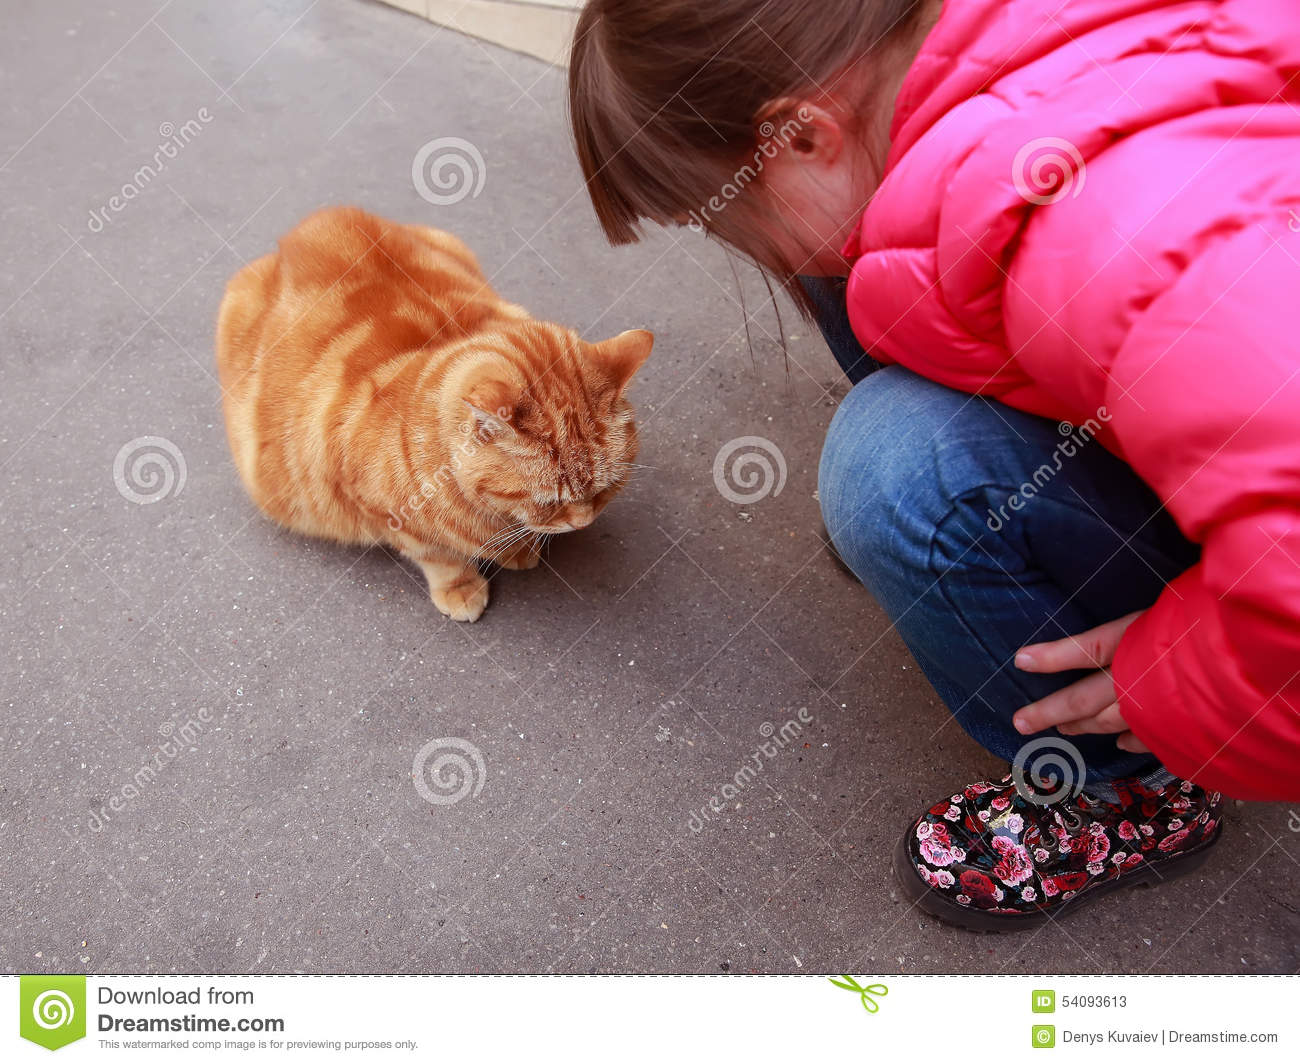 Girl speaking with cat